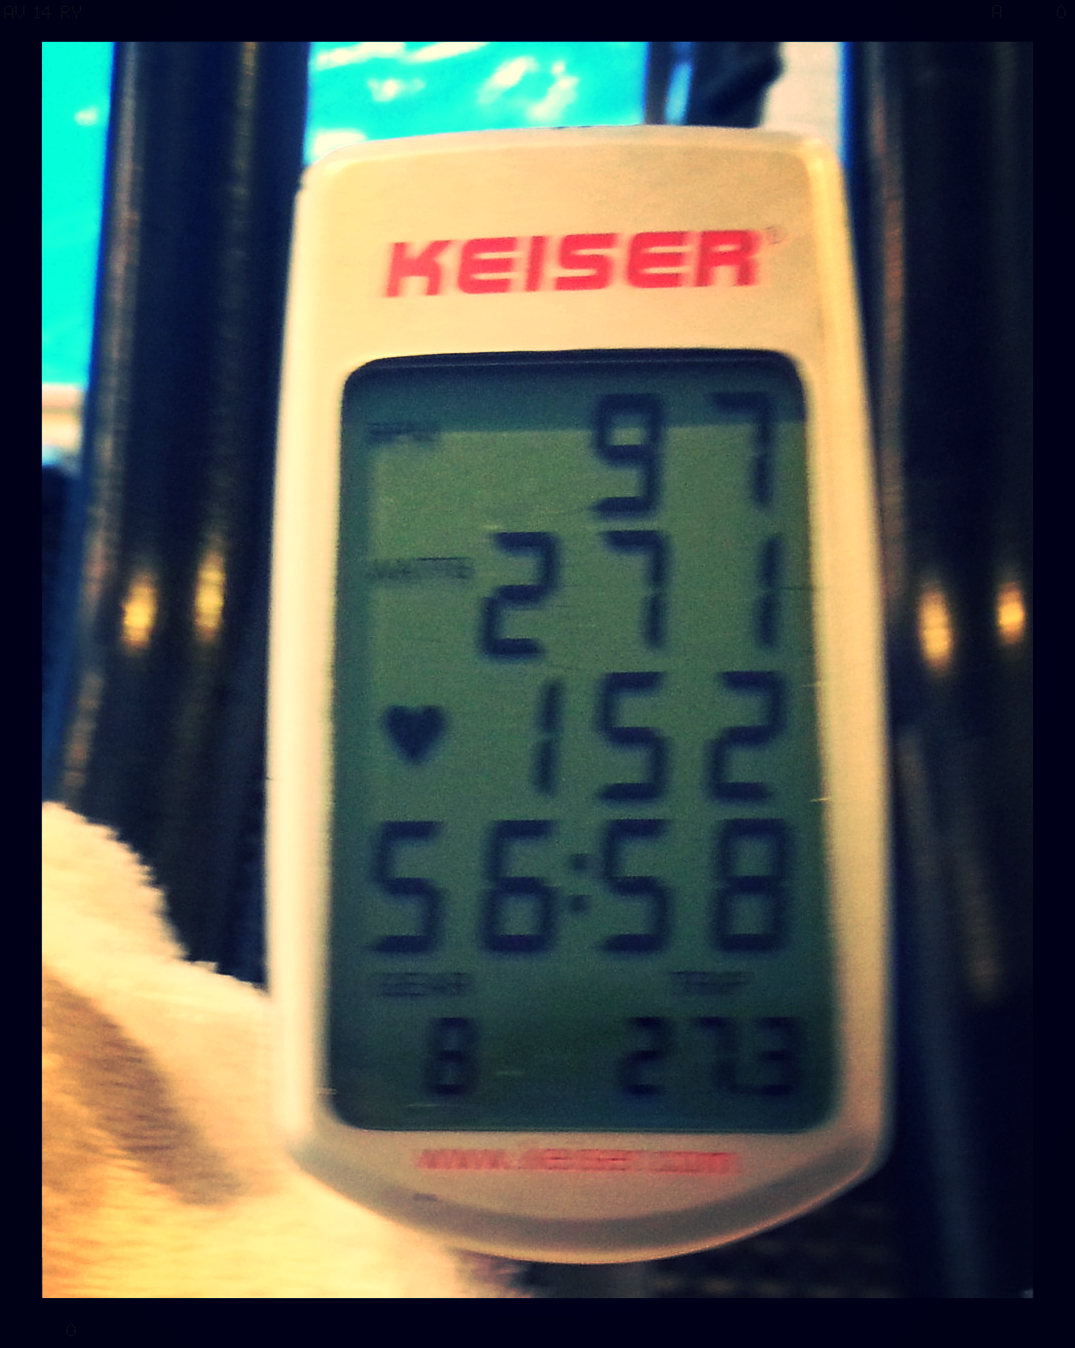 Workout summary - still holding onto hope thatPolar will send me some Keo Power Pedals :-)